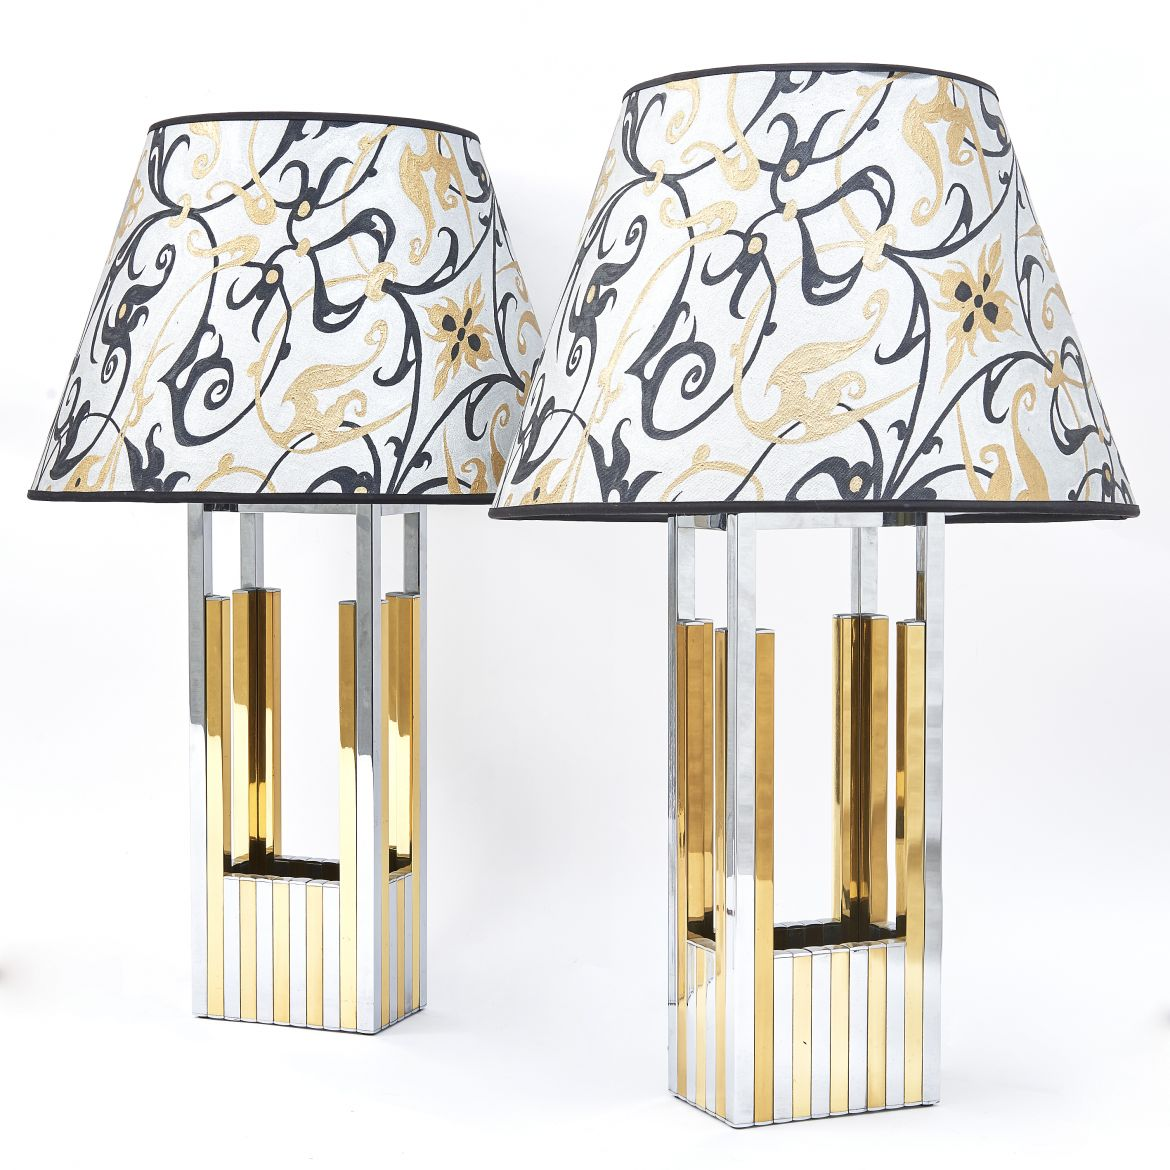 Pair Romeo Rega Lamps